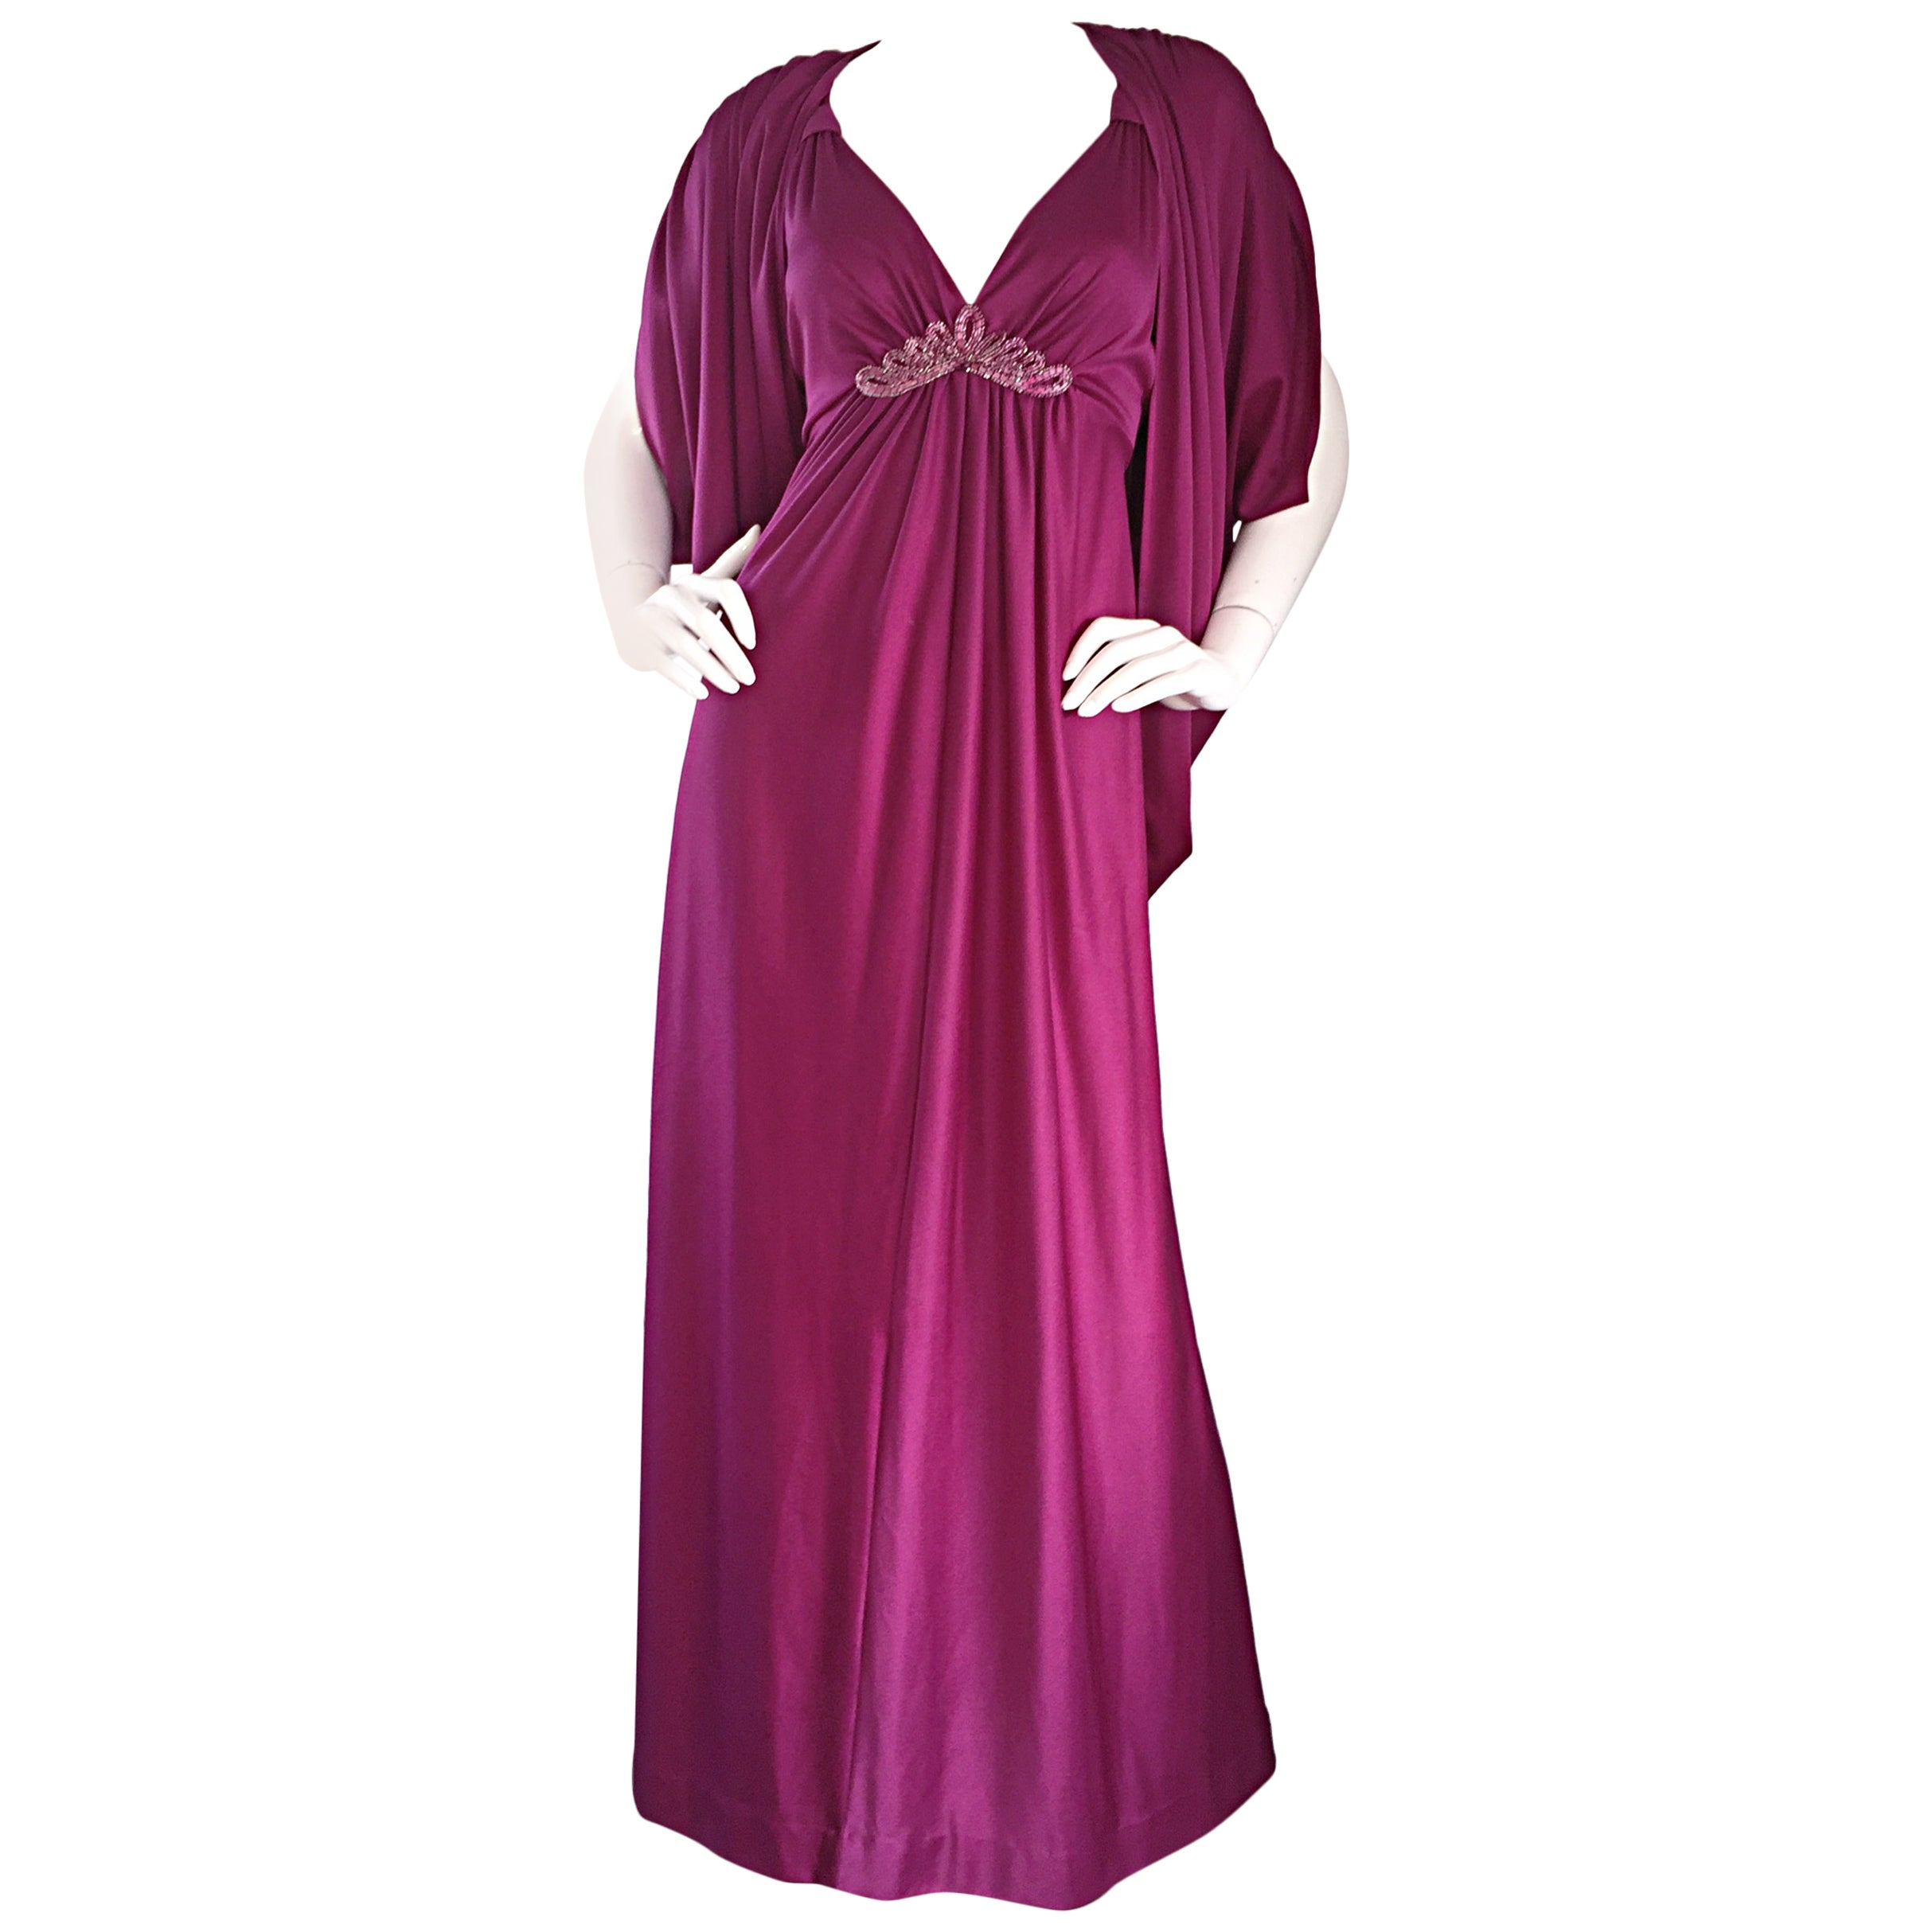 1970s Wine / Burgundy 70s Vintage Beaded Disco Maxi Dress w/ Matching Shrug